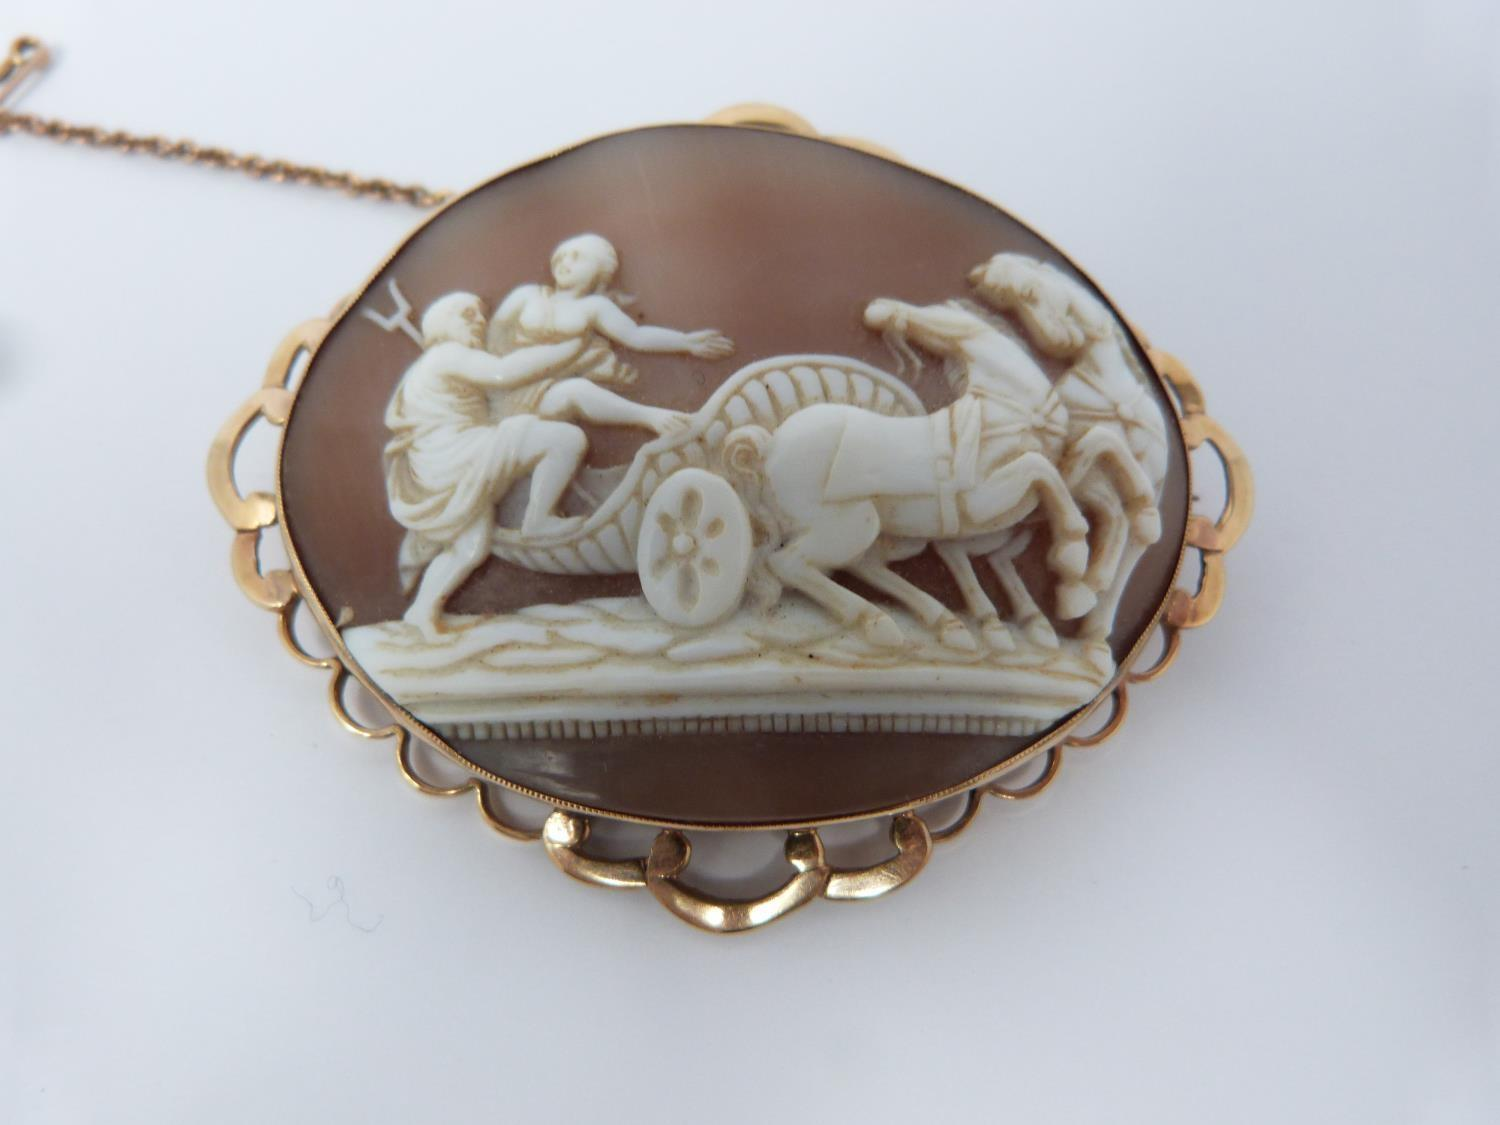 A 9ct stamped yellow gold landscape cameo brooch depicting man and woman climbing into a chariot - Image 4 of 9